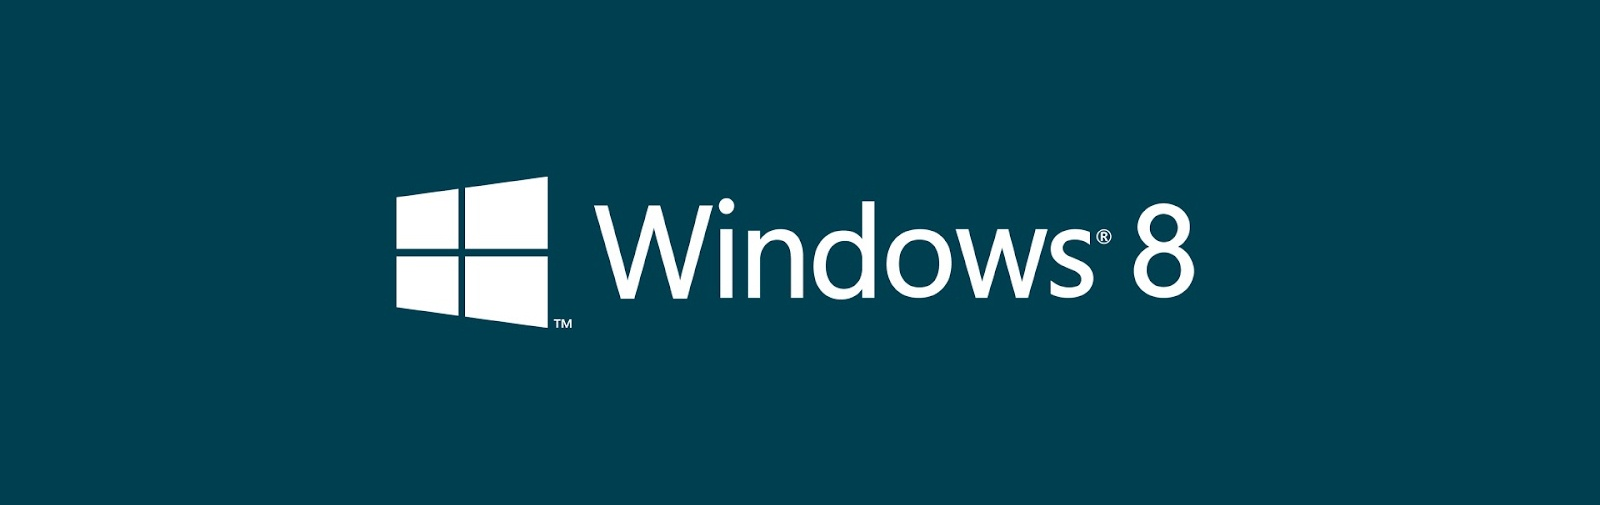 5 тапета с логото на Windows 8